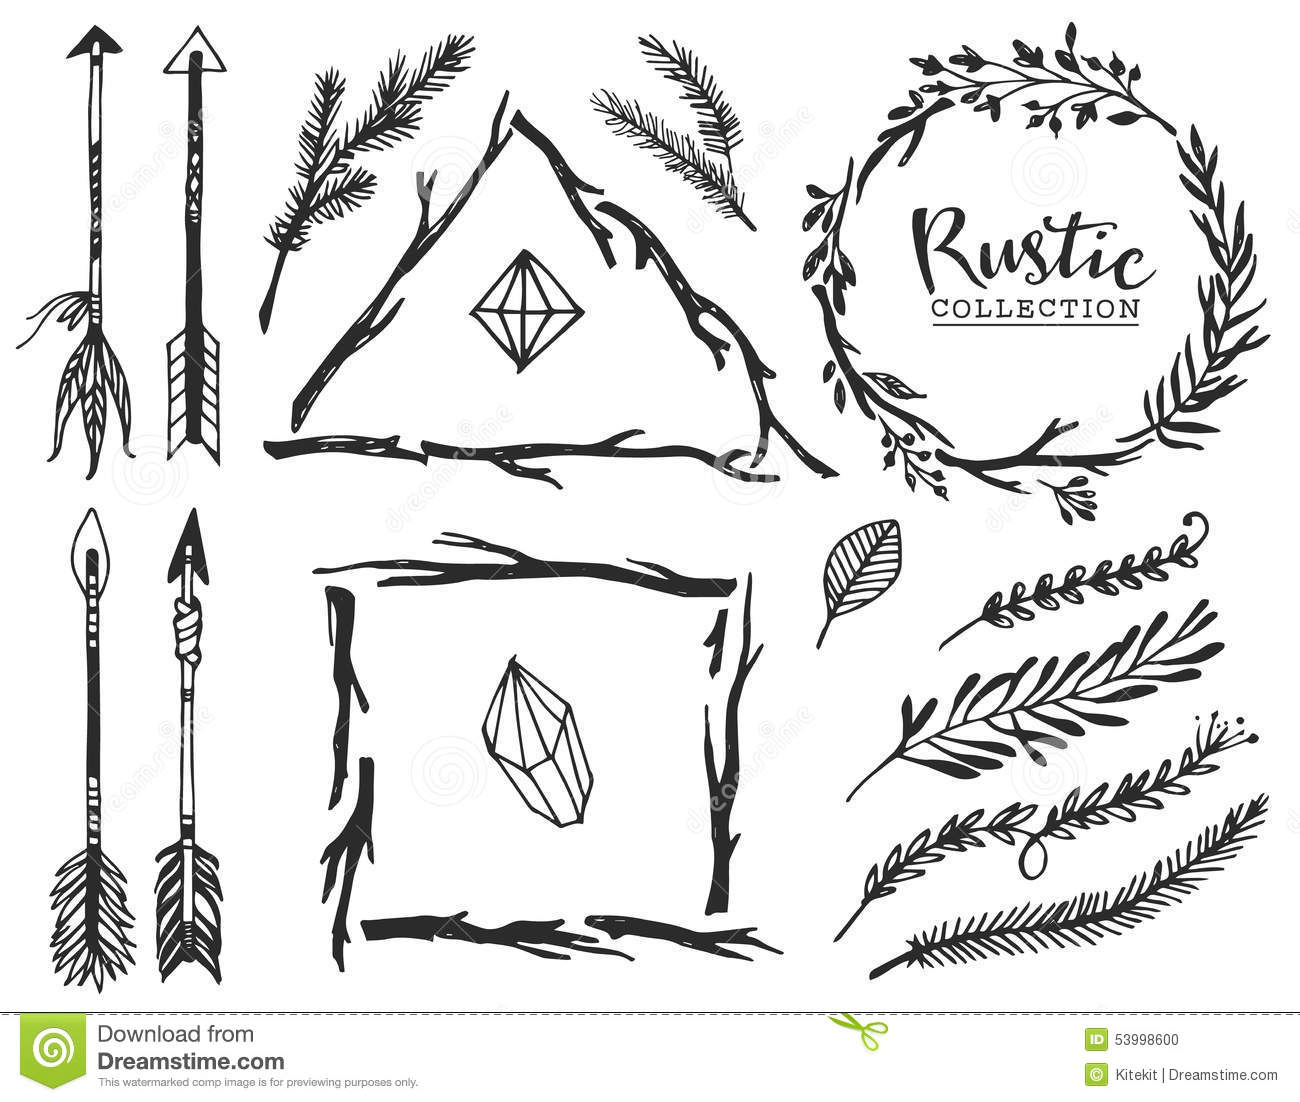 Rustic Arrow Stock Illustrations 2 272 Rustic Arrow